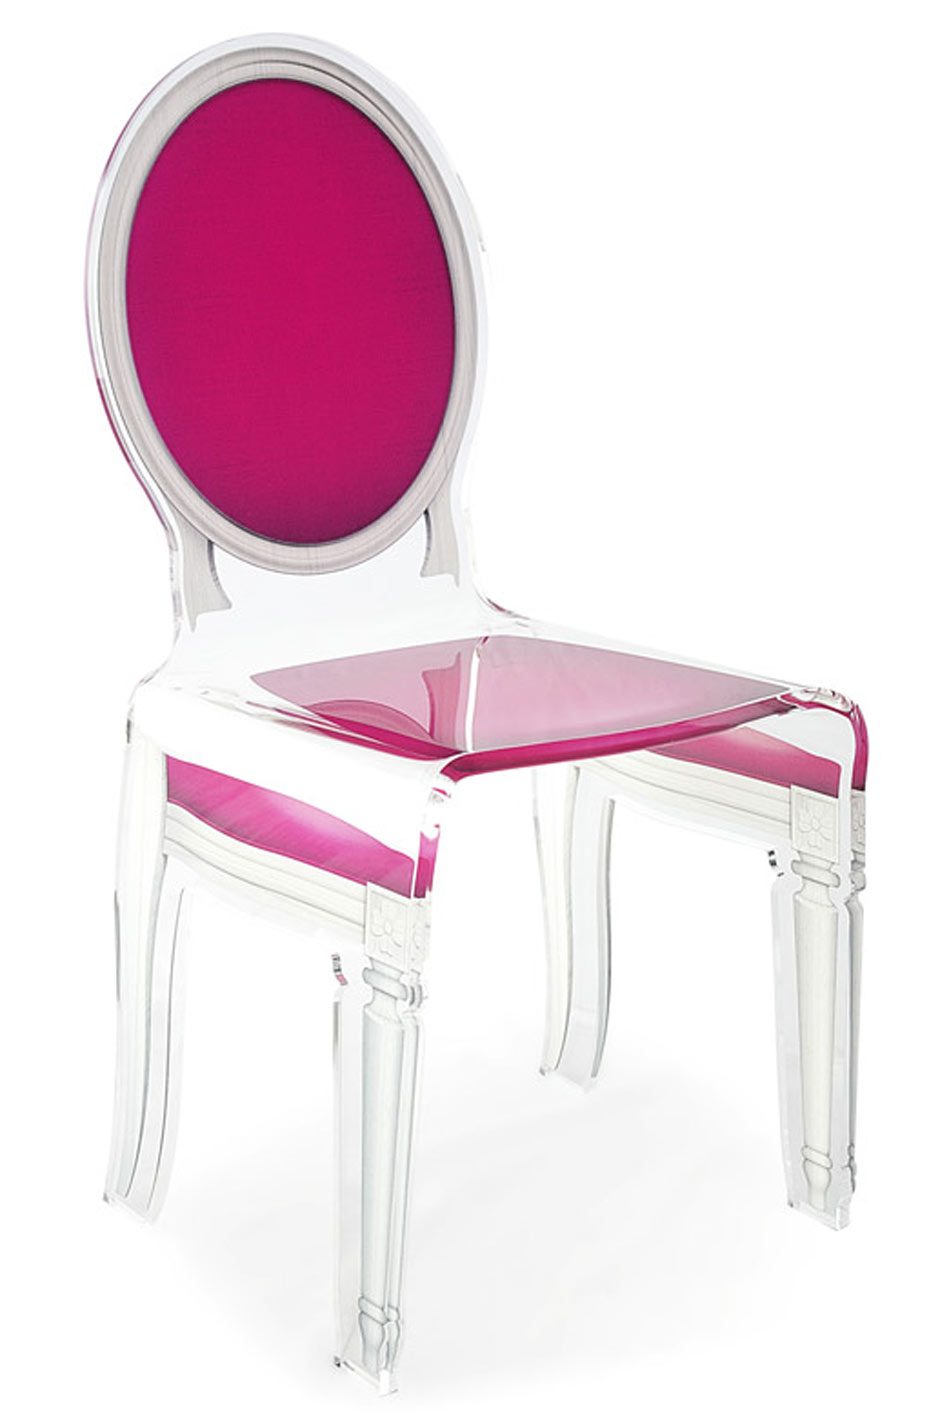 chaise baroque m daillon plexiglas sixteen rose fuchsia acrila sp cialiste du plexiglas r f. Black Bedroom Furniture Sets. Home Design Ideas